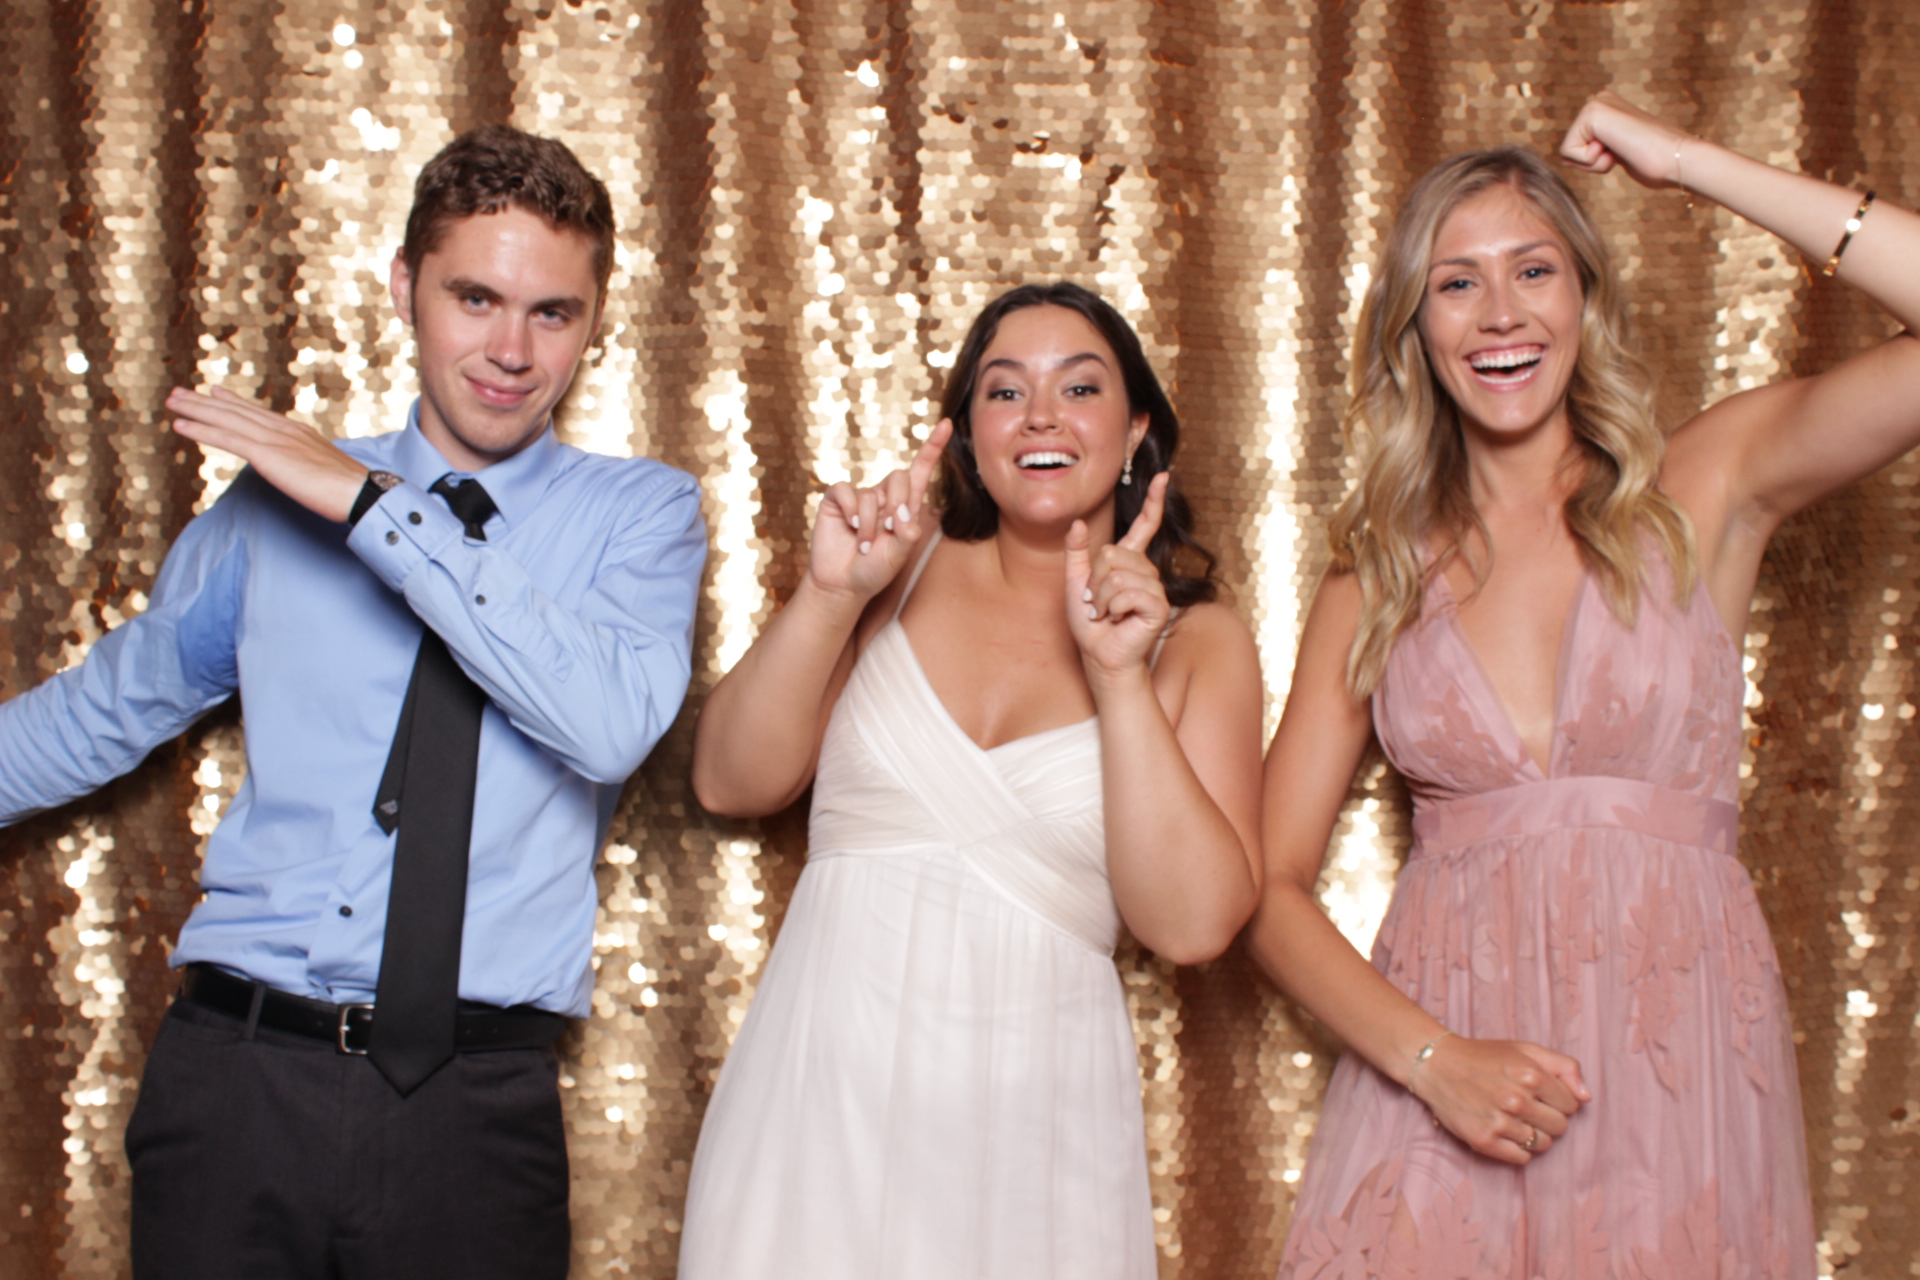 Minneapolis_St Paul_Photo_Booths_Weddings (6).jpg